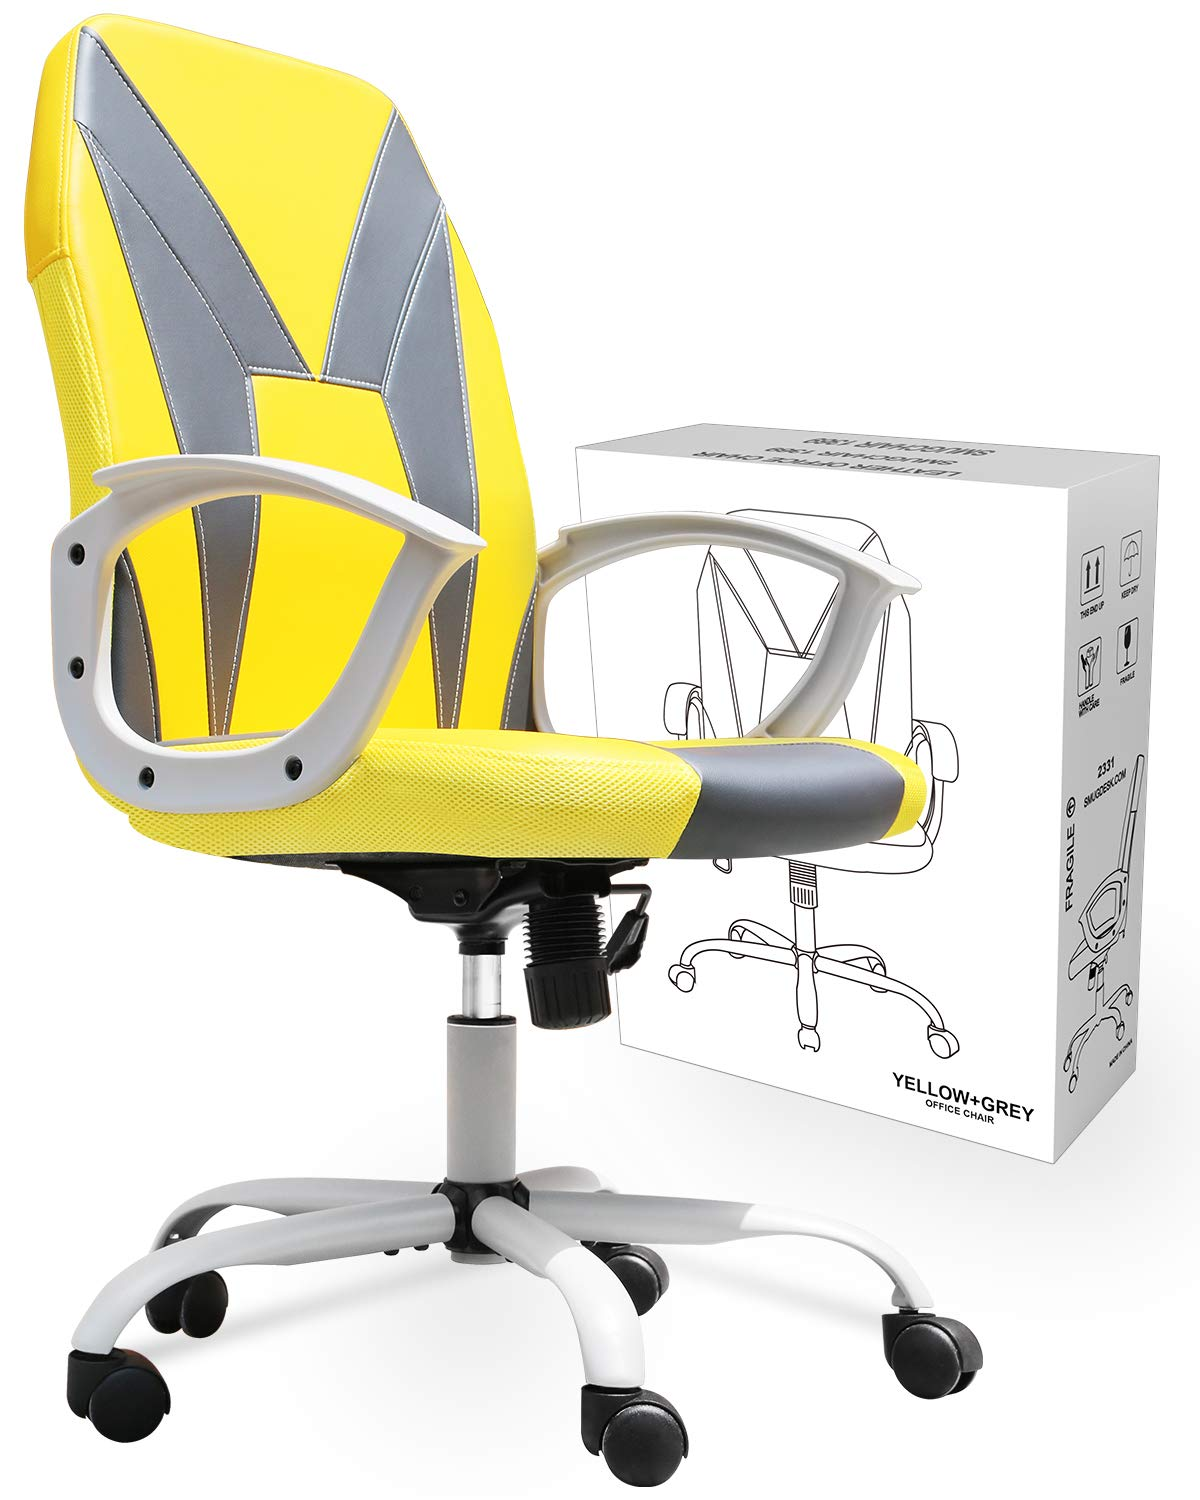 Smugchair Gaming Chair Ergonomic Office Chair Desk Chair Executive Bonded Leather Computer Chair, Yellow by SMUGCHAIR